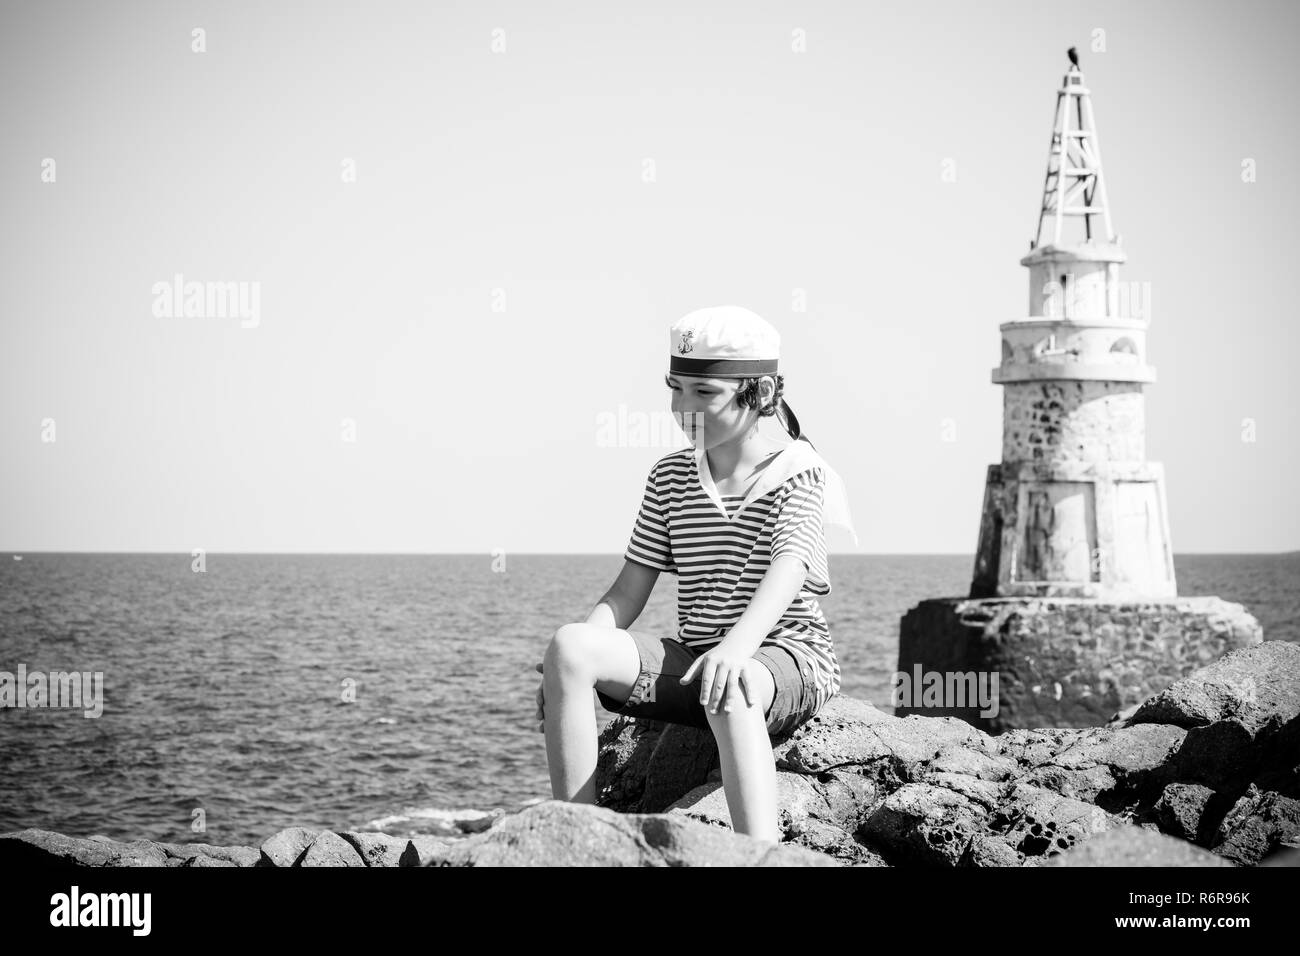 A boy in a striped T-shirt and cap sits on the rocks. In the background stands a lighthouse. Black and white. Stylization, vignetting. - Stock Image